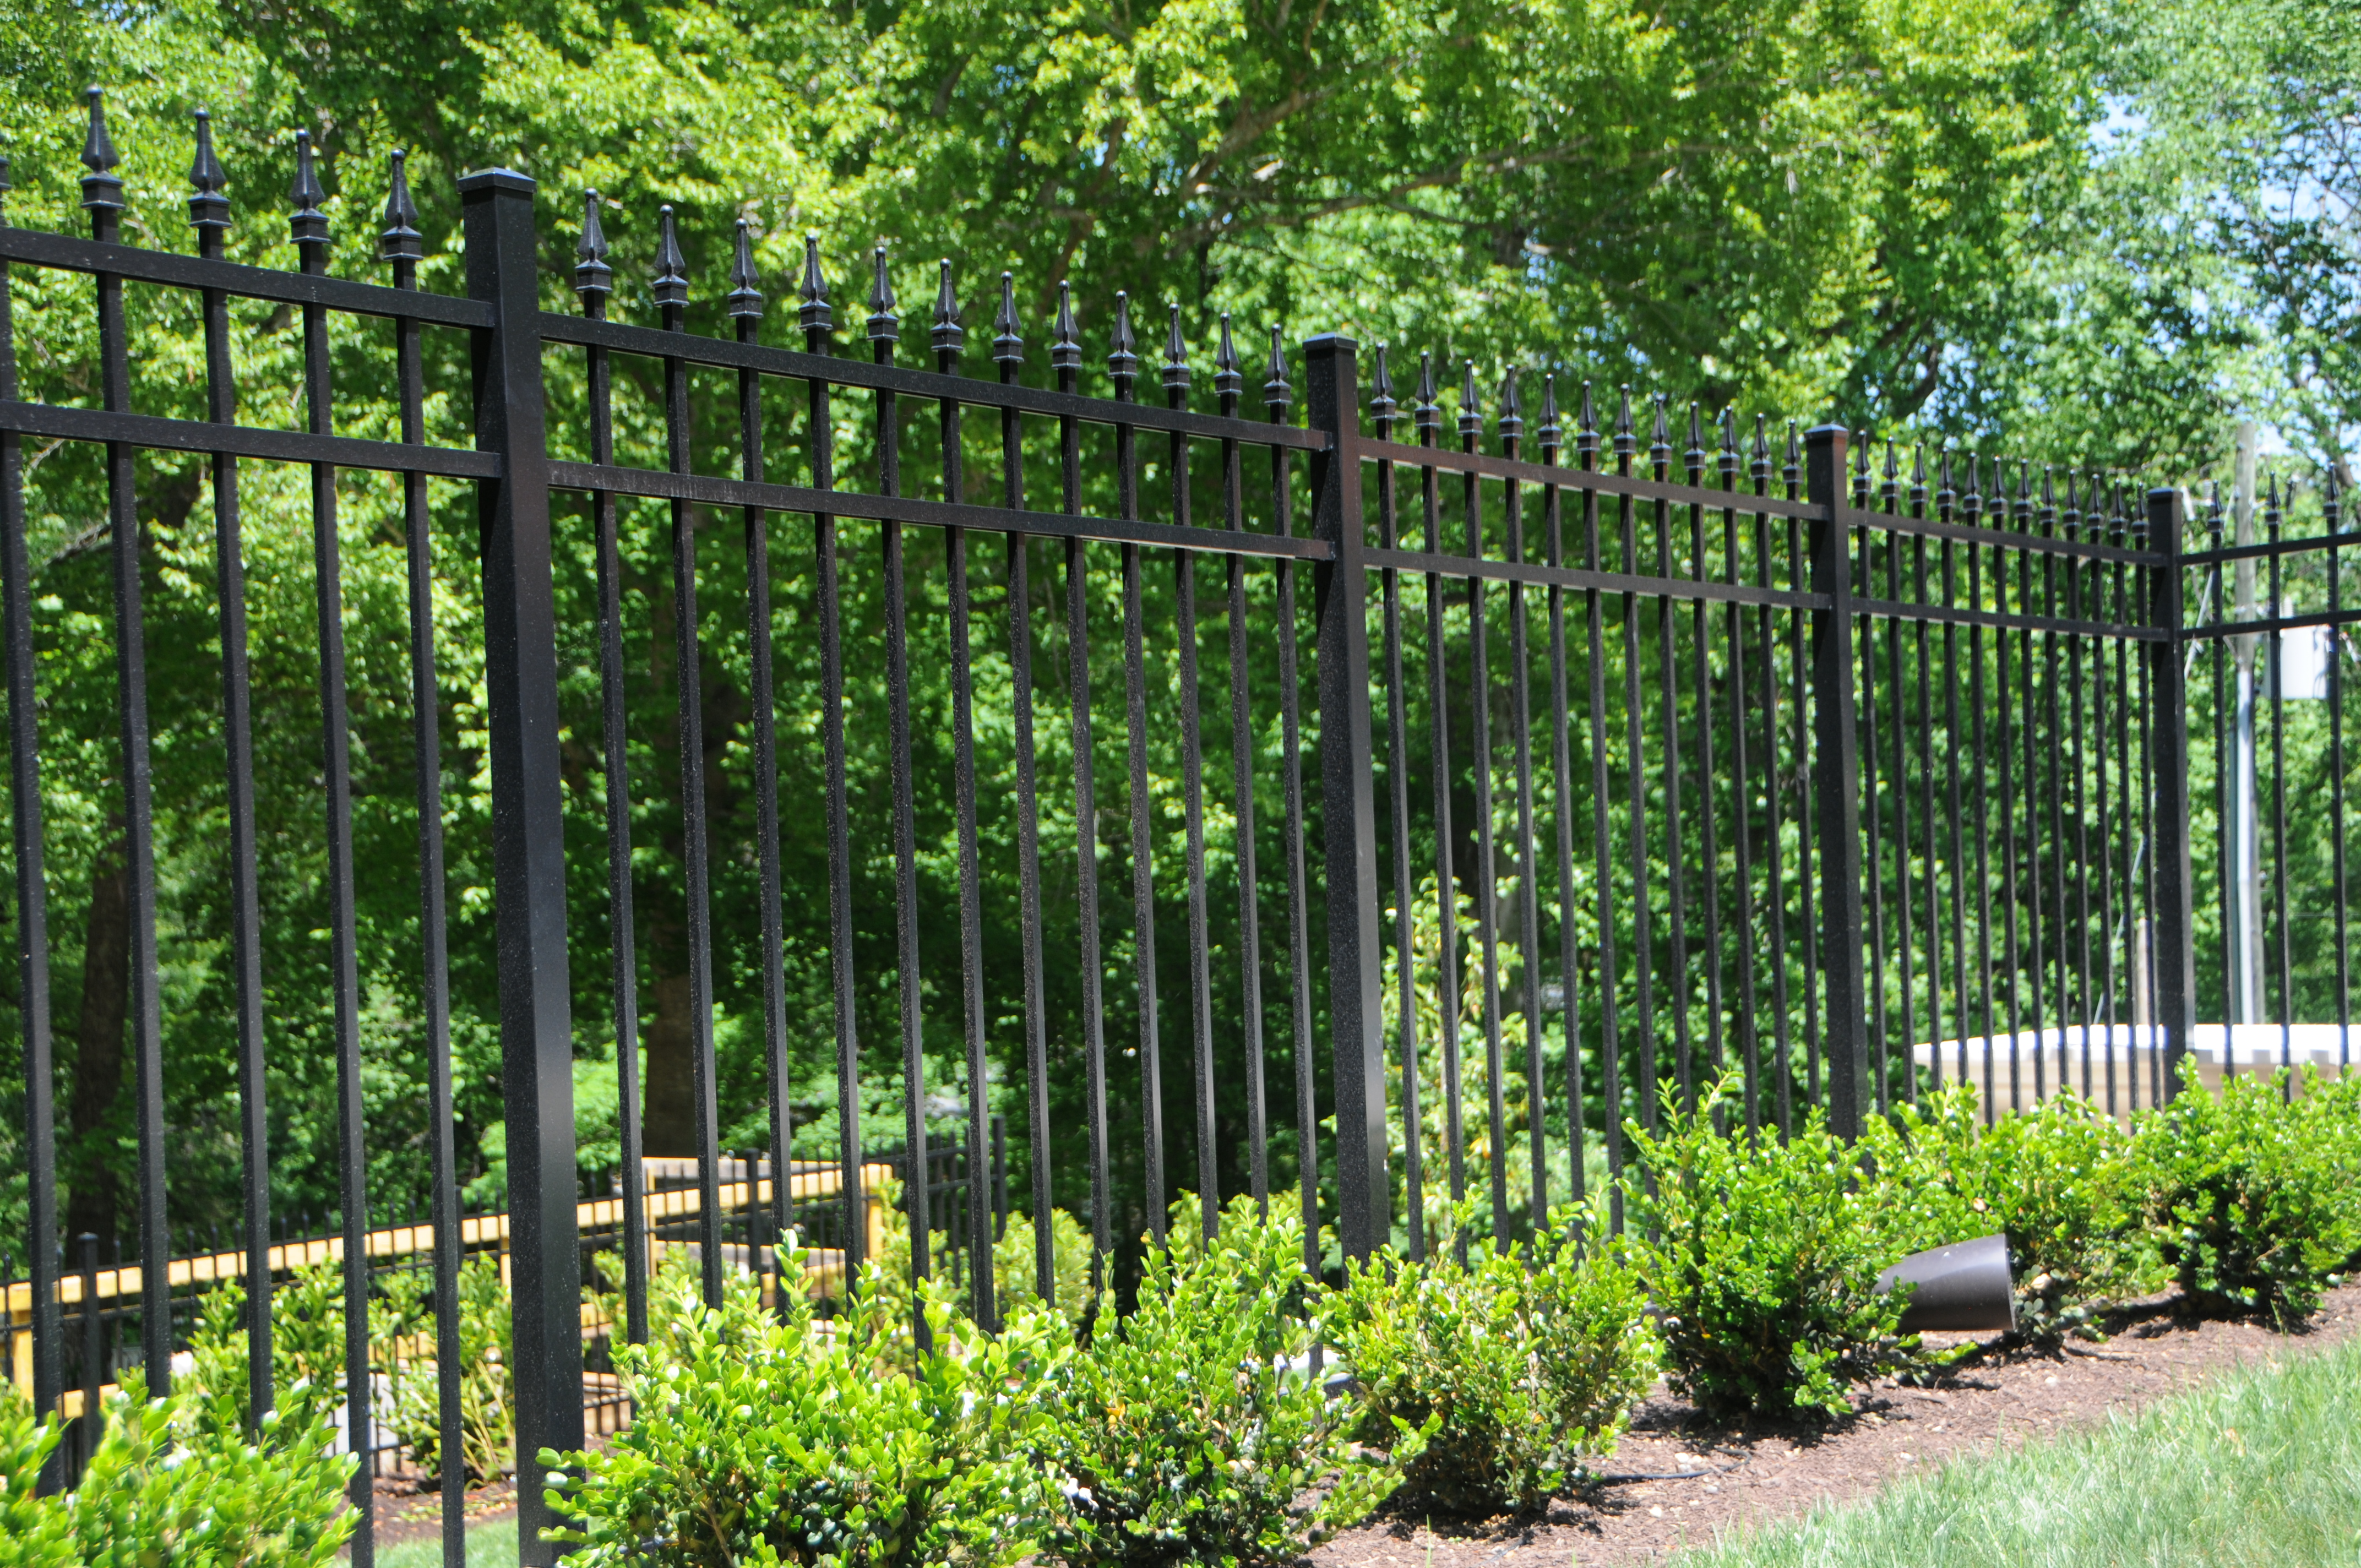 Allience Ornamental Fencing